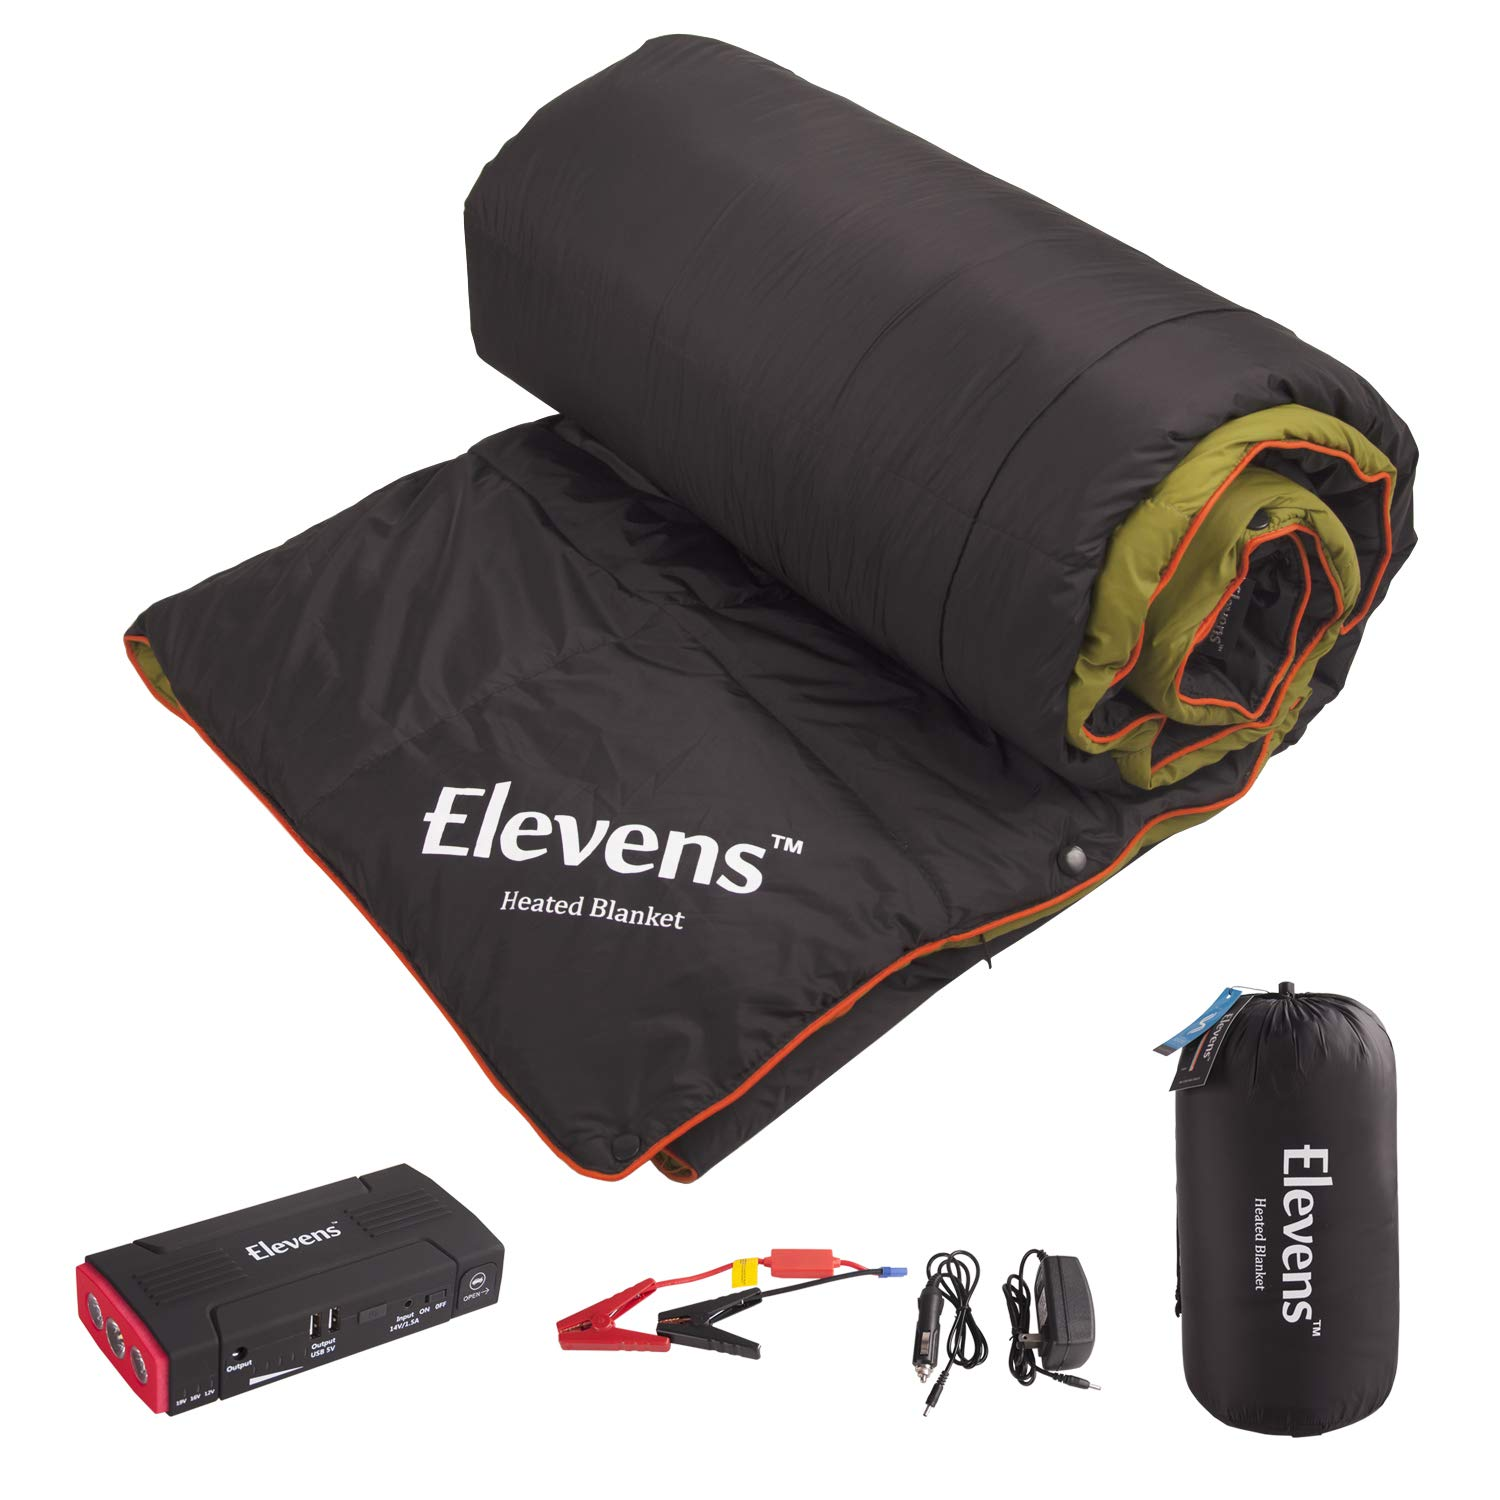 Elevens 3-in-1 Battery Powered Heated Blanket for 4-Season Traveling, Camping, Hiking Outdoor Activities by Elevens